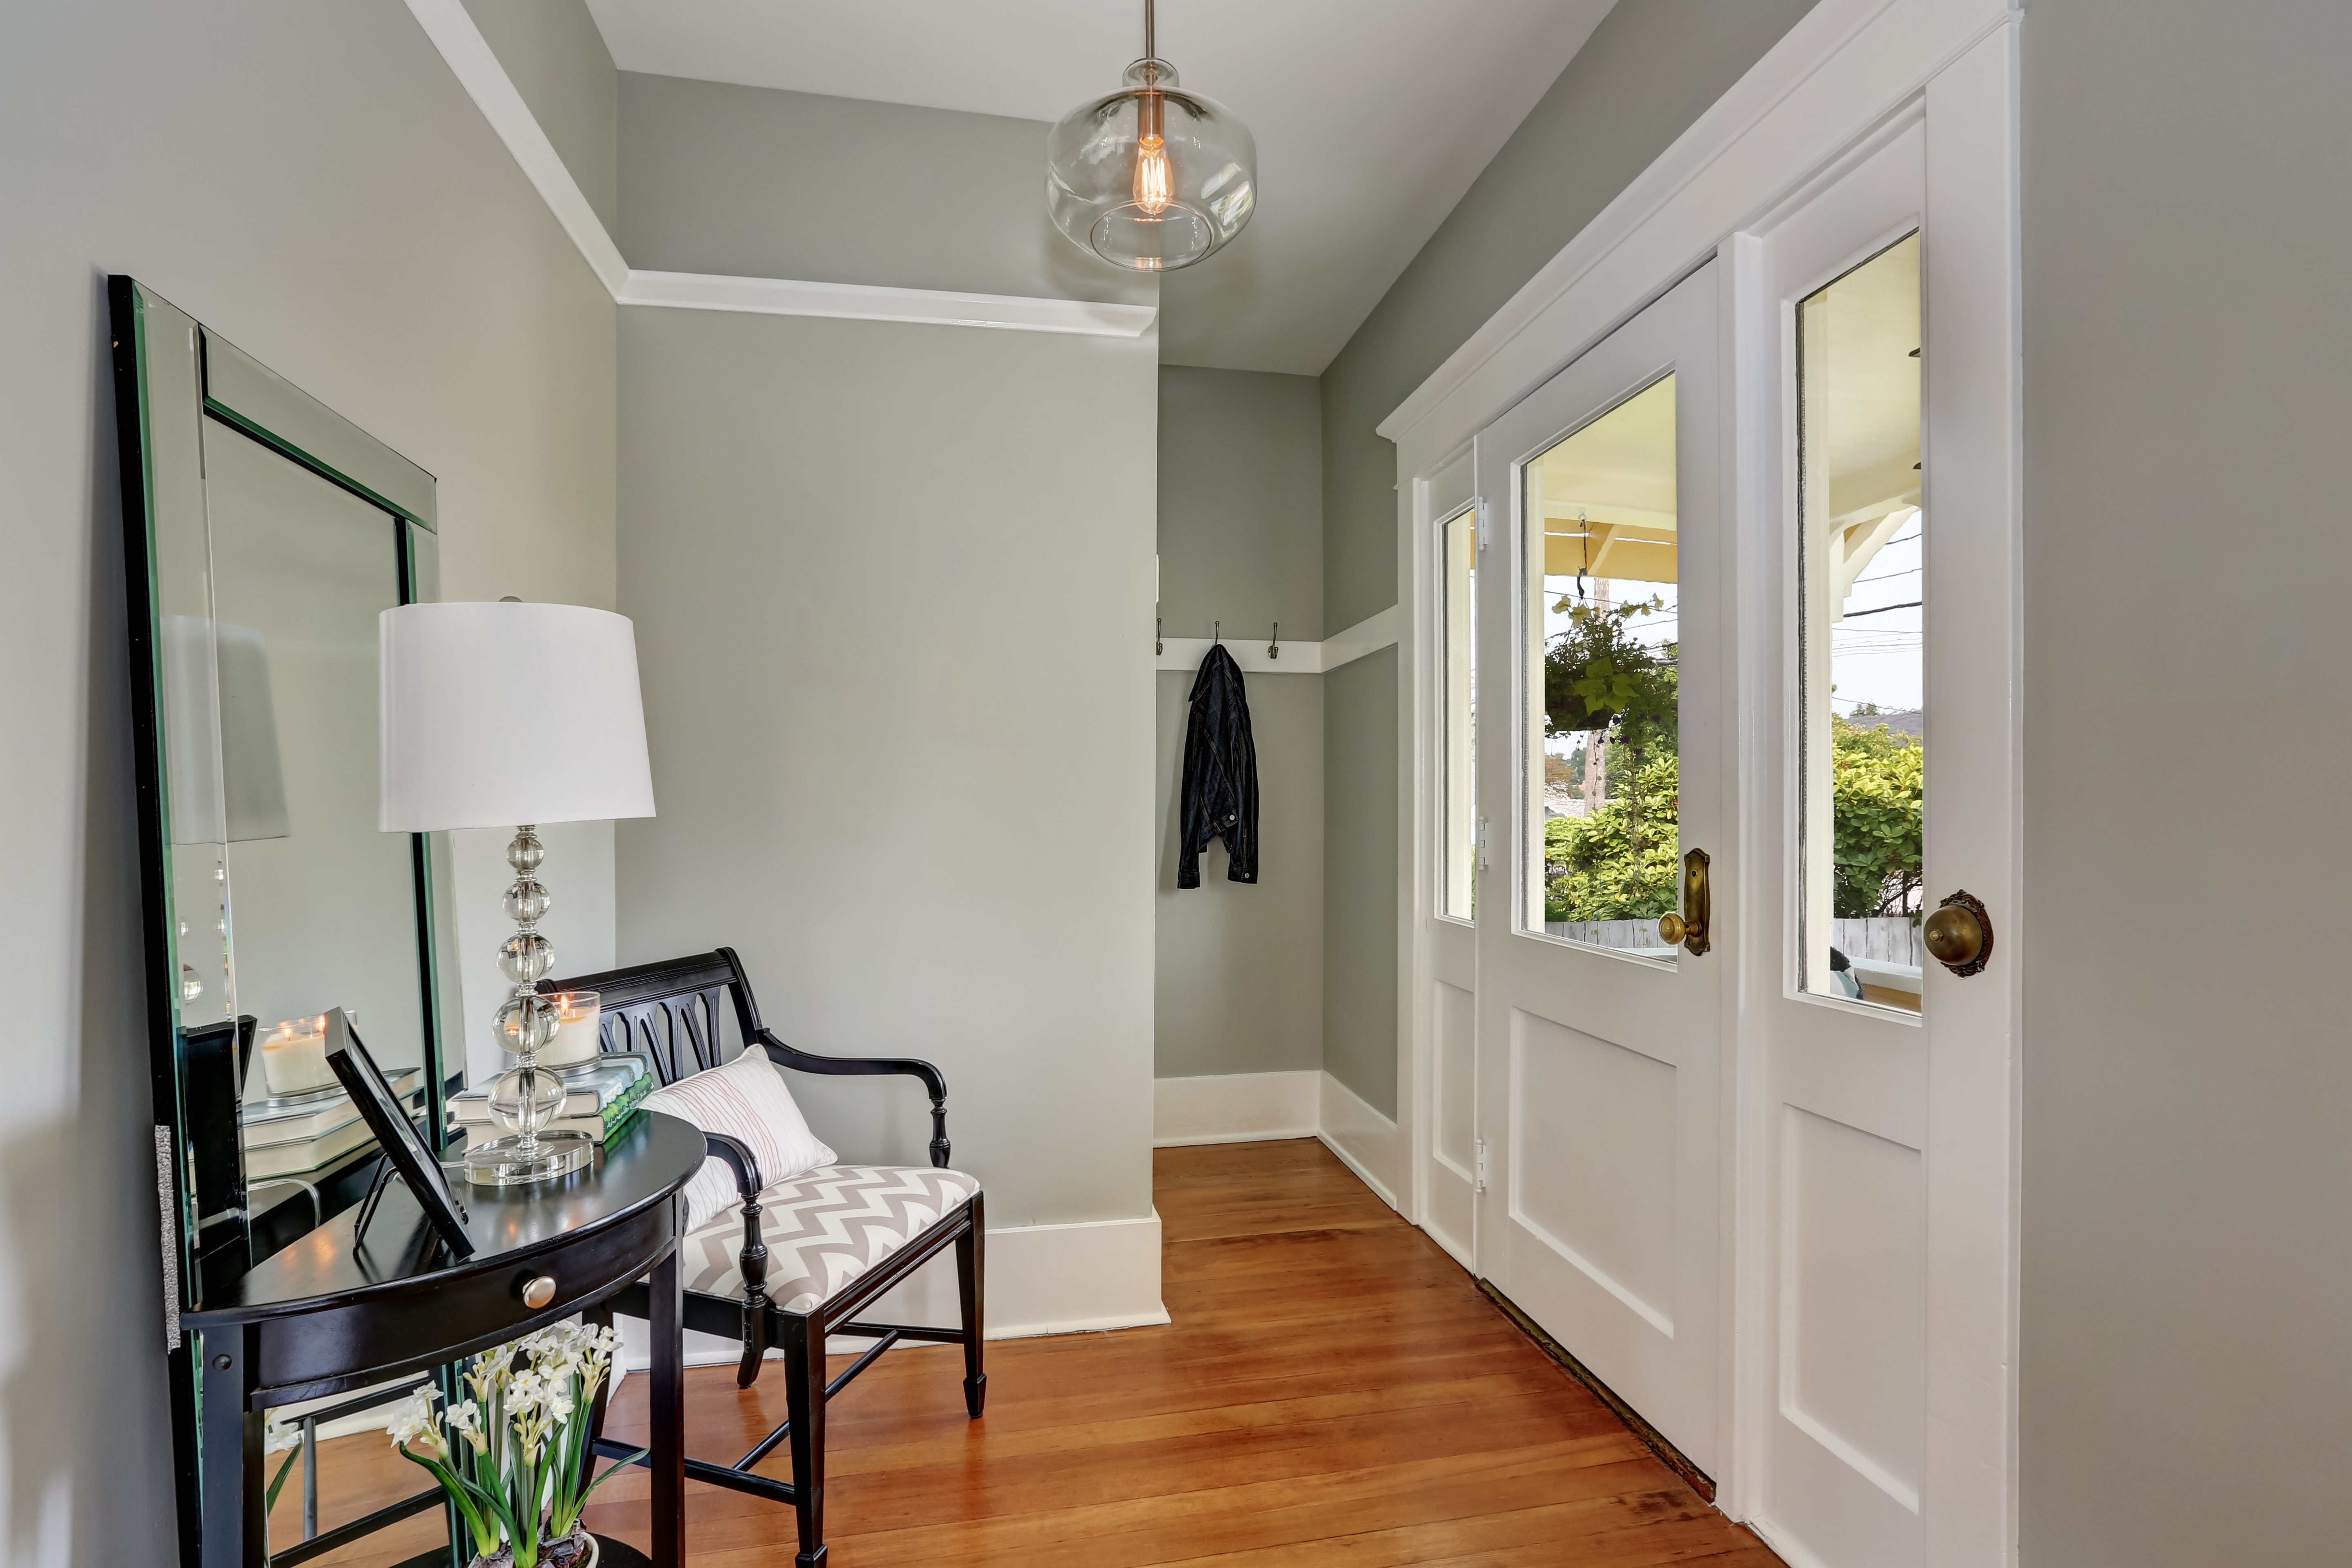 modern home entryway with light grey walls, a decorative mirror, table, and chair